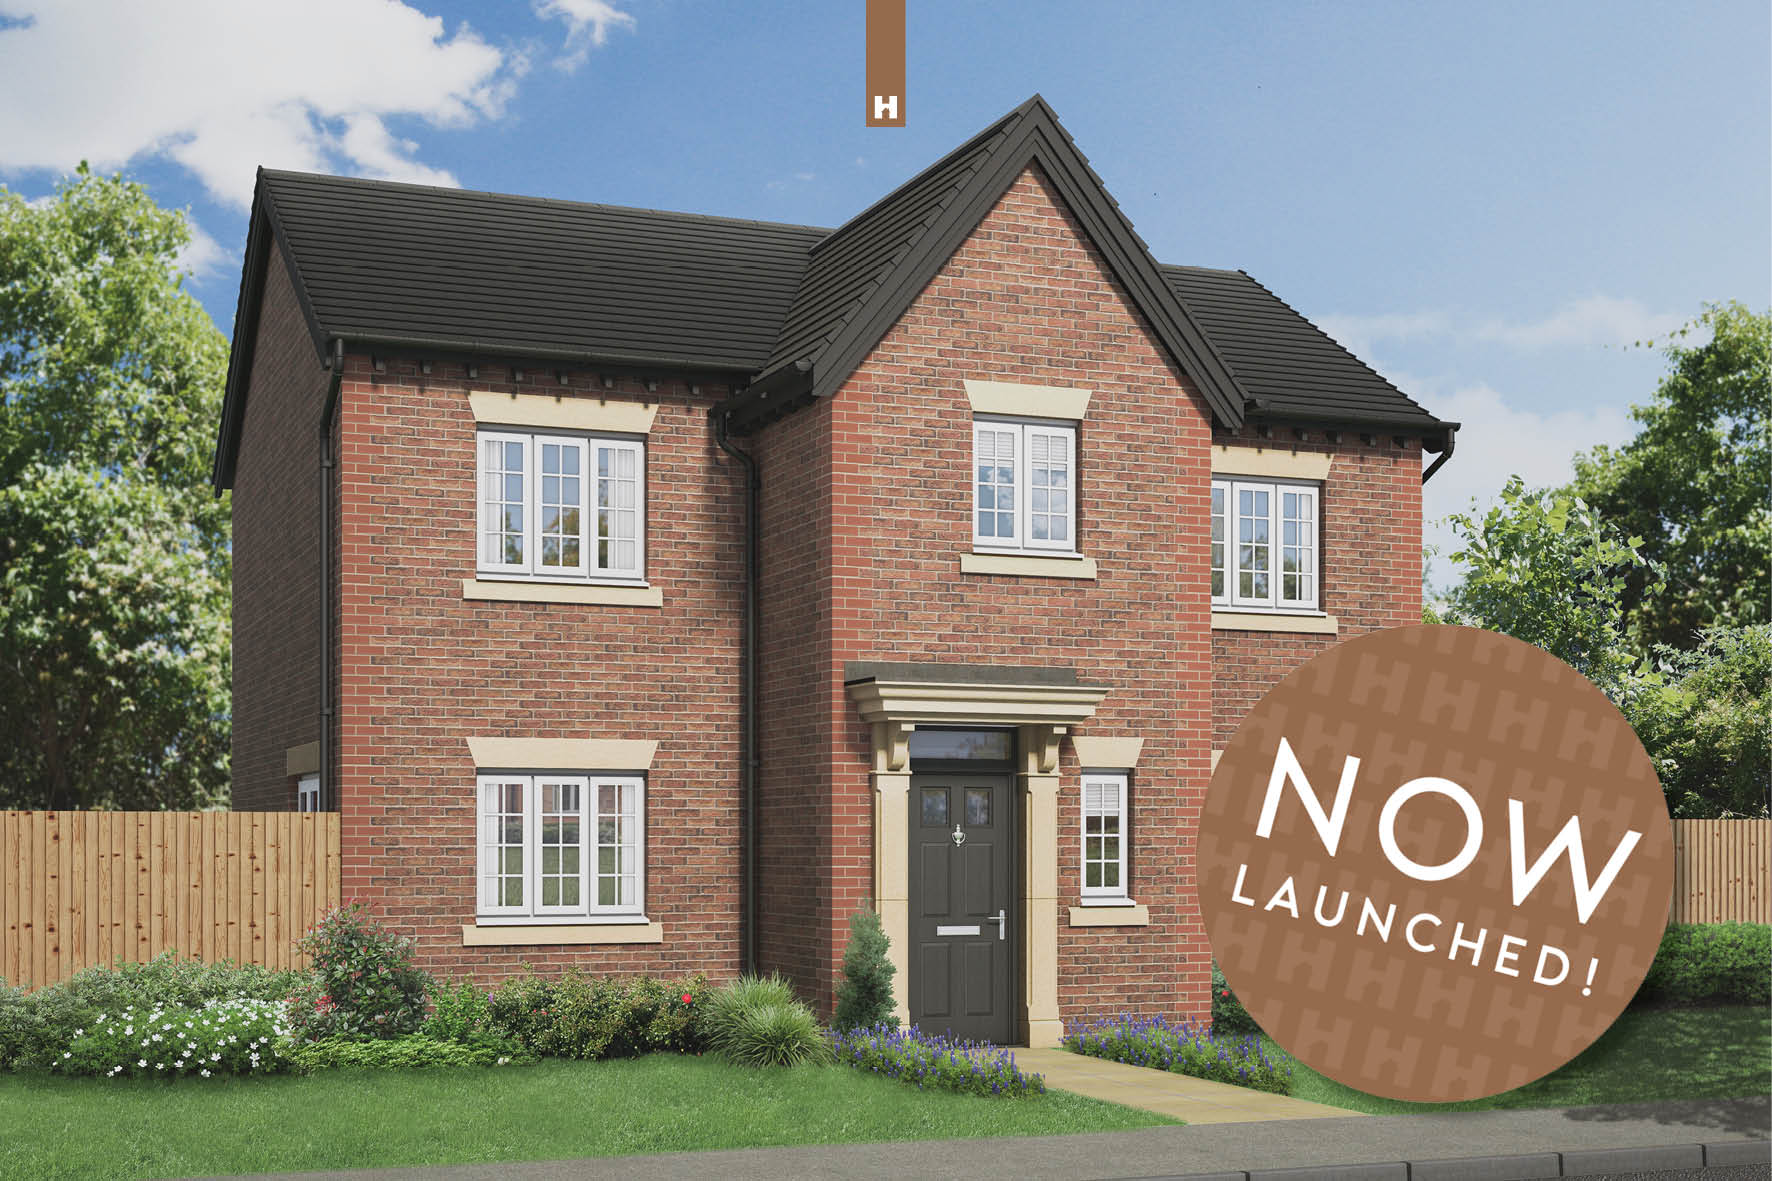 Aston Meadows - Aston - NANTWICHPicturesque semi-rural setting3 & 4 bed luxury homes